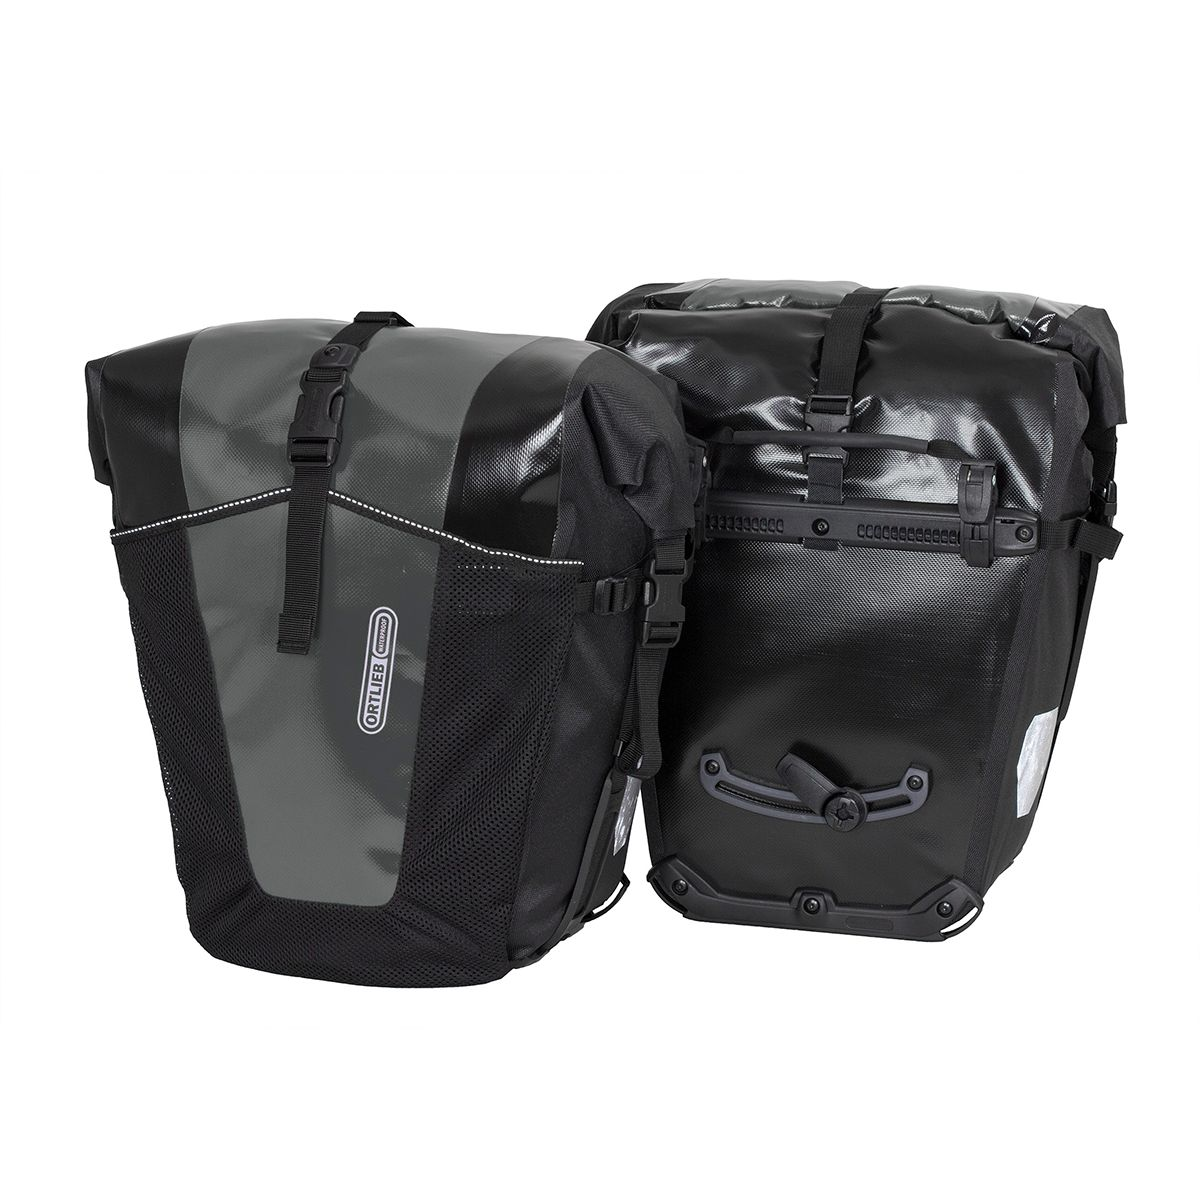 Back Roller Pro Classic set of two panniers